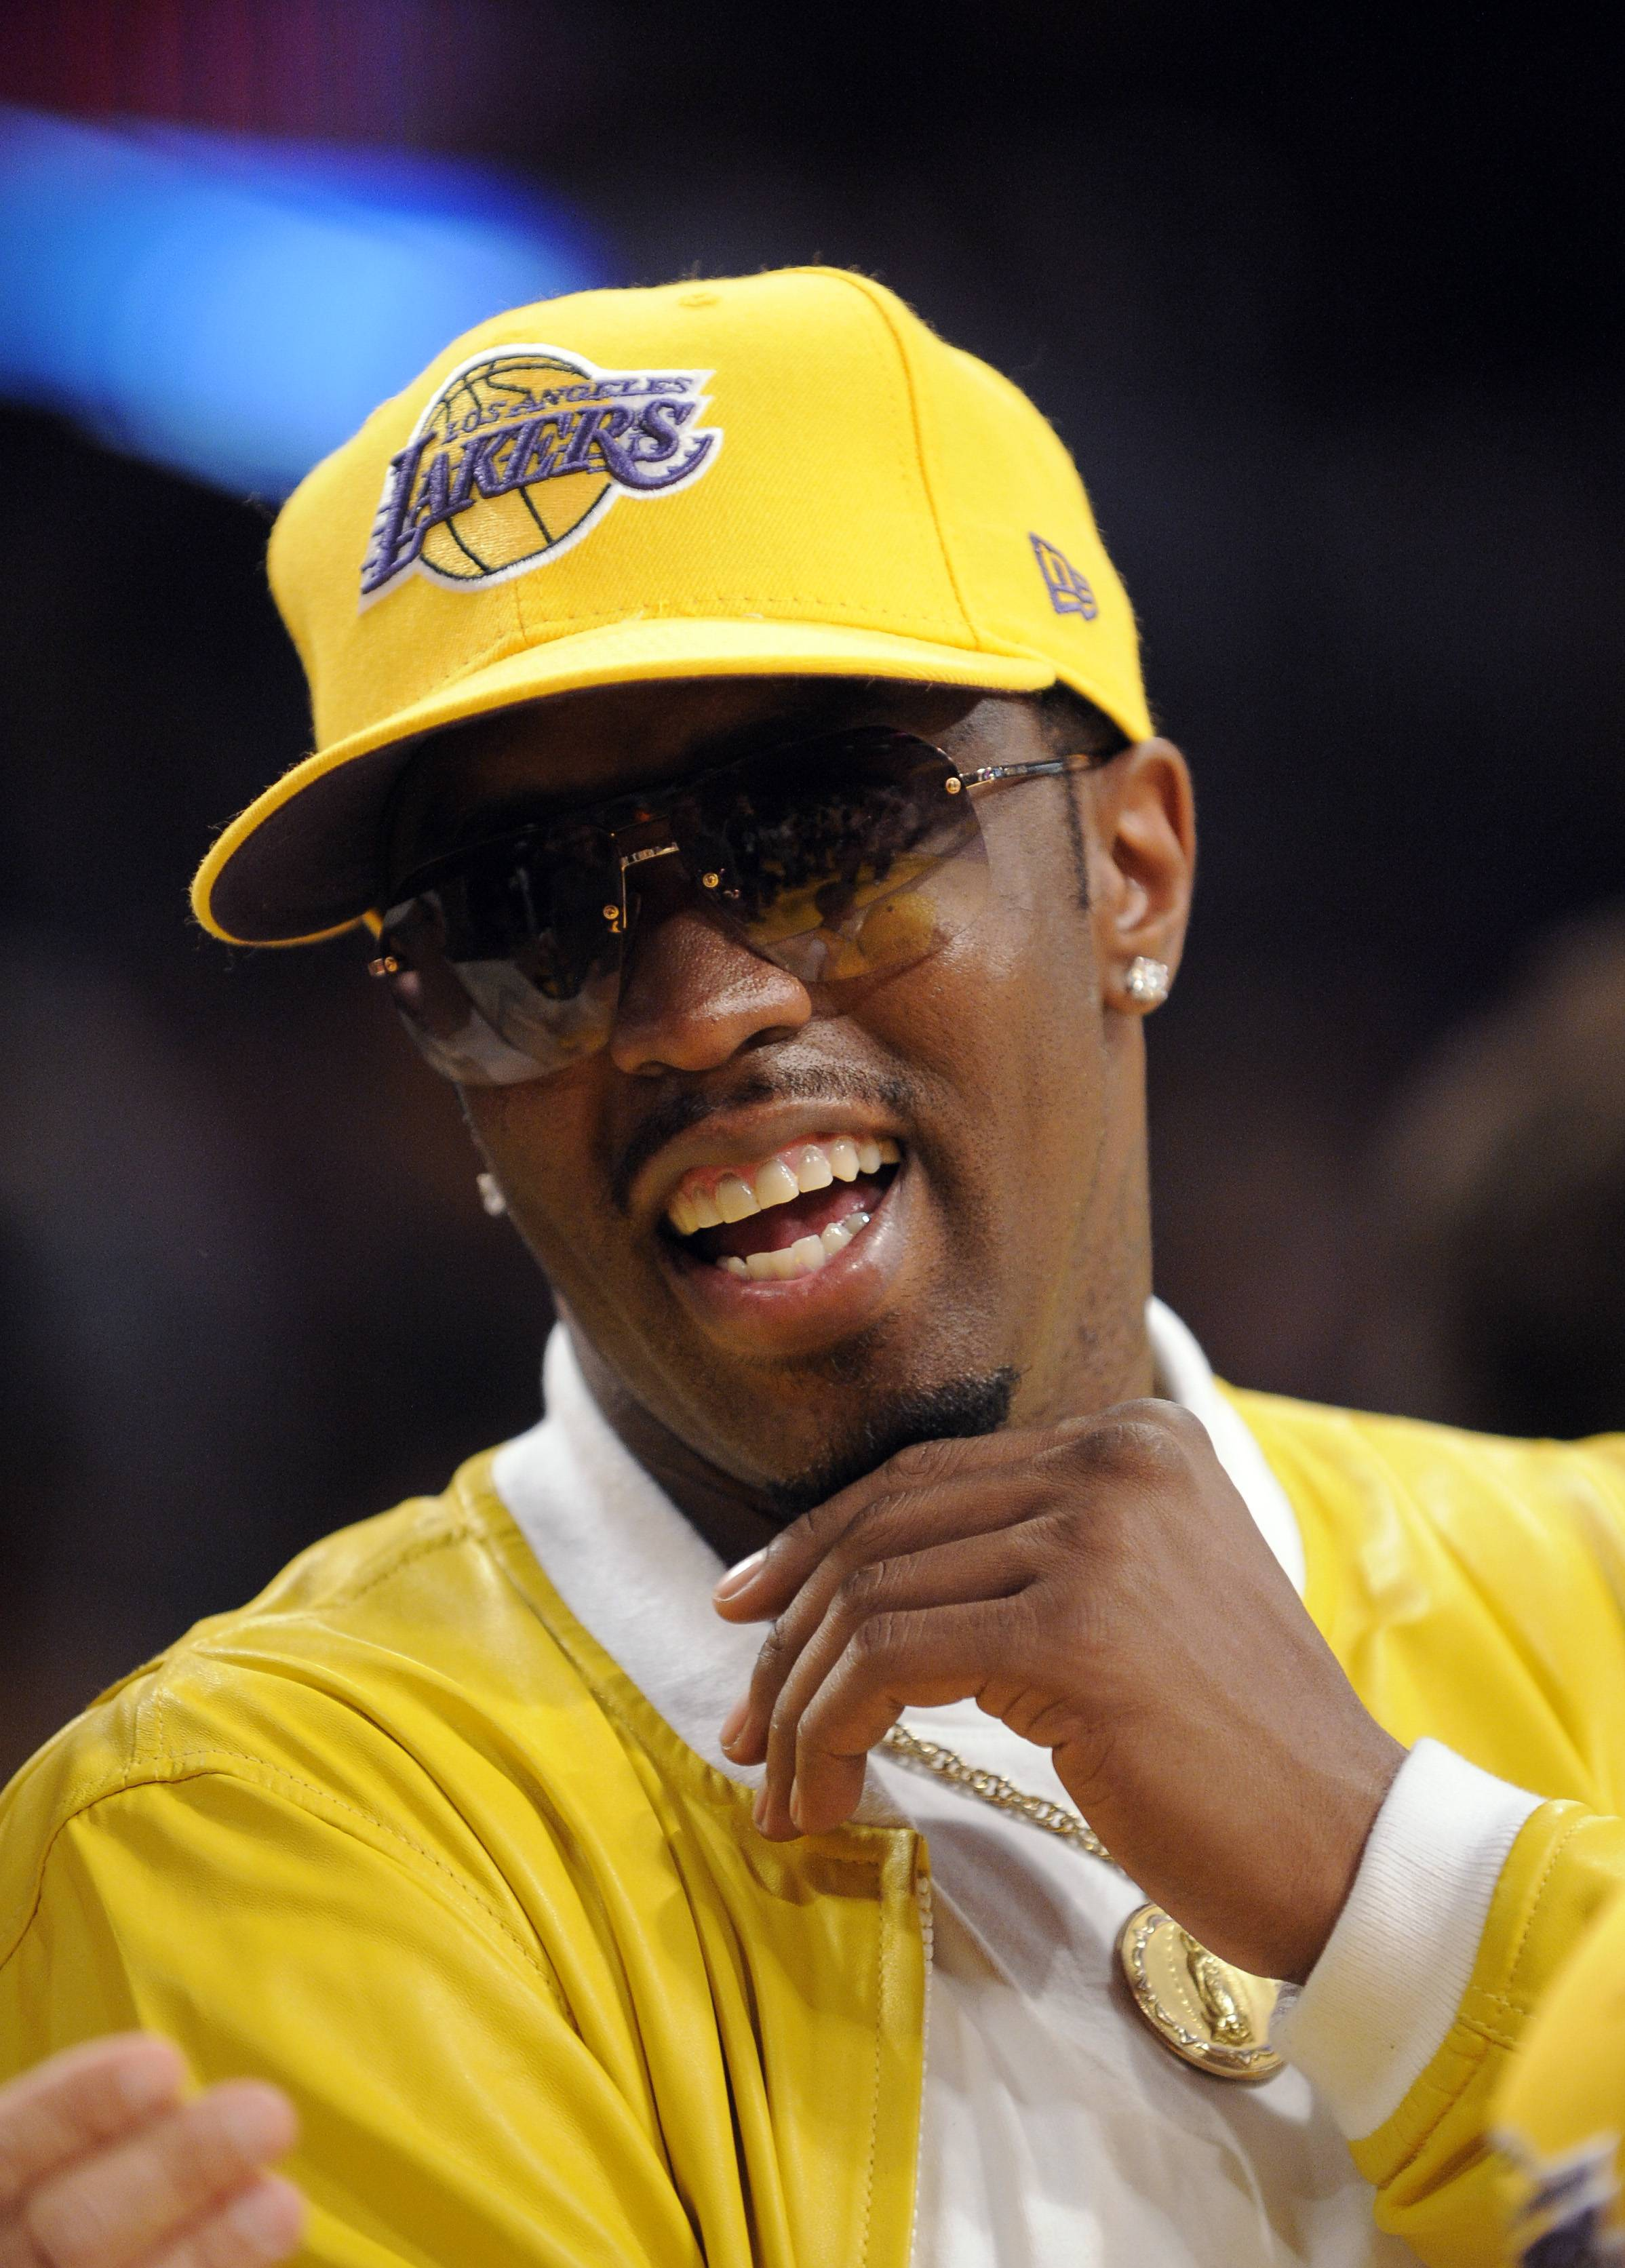 FILE - In this June 7, 2009, file photo, Music mogul Sean Combs sits courtside during the first half of Game 2 of the NBA basketball finals between the Los Angeles Lakers and Orlando Magic in Los Angeles. If Donald Sterling is compelled to sell the Los Angeles Clippers, the list of potential buyers will have more stars than the team's roster. Combs tweeted his interest in going after the Clippers.